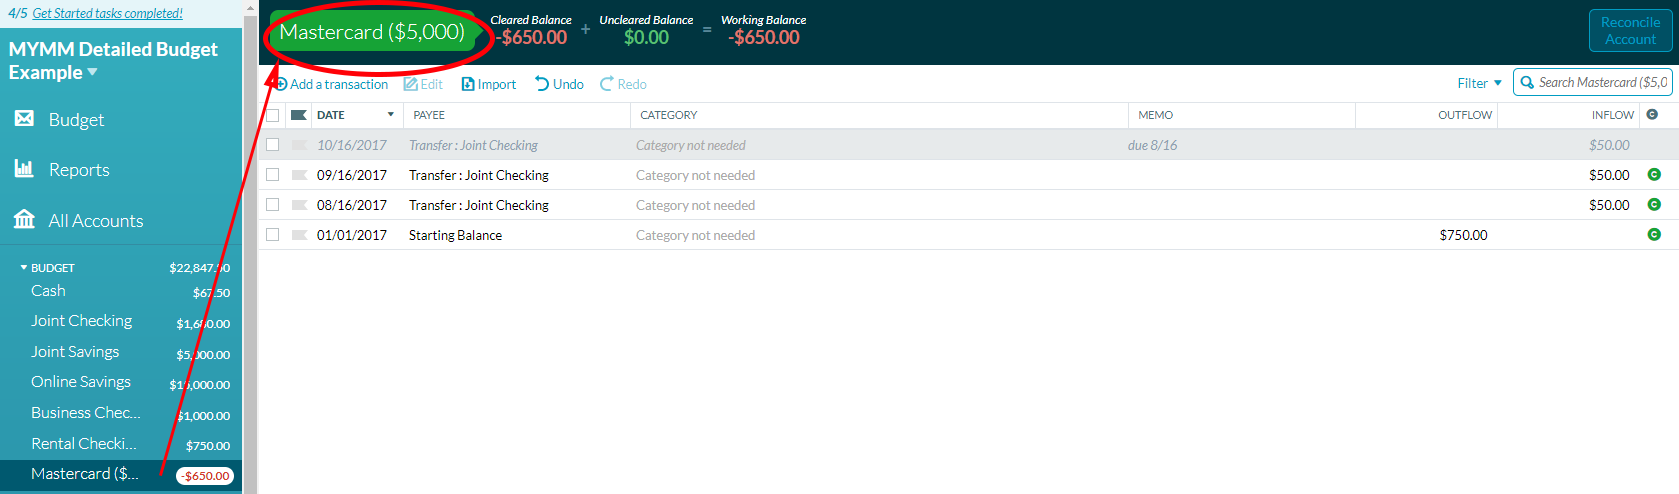 Using YNAB to track credit card limits